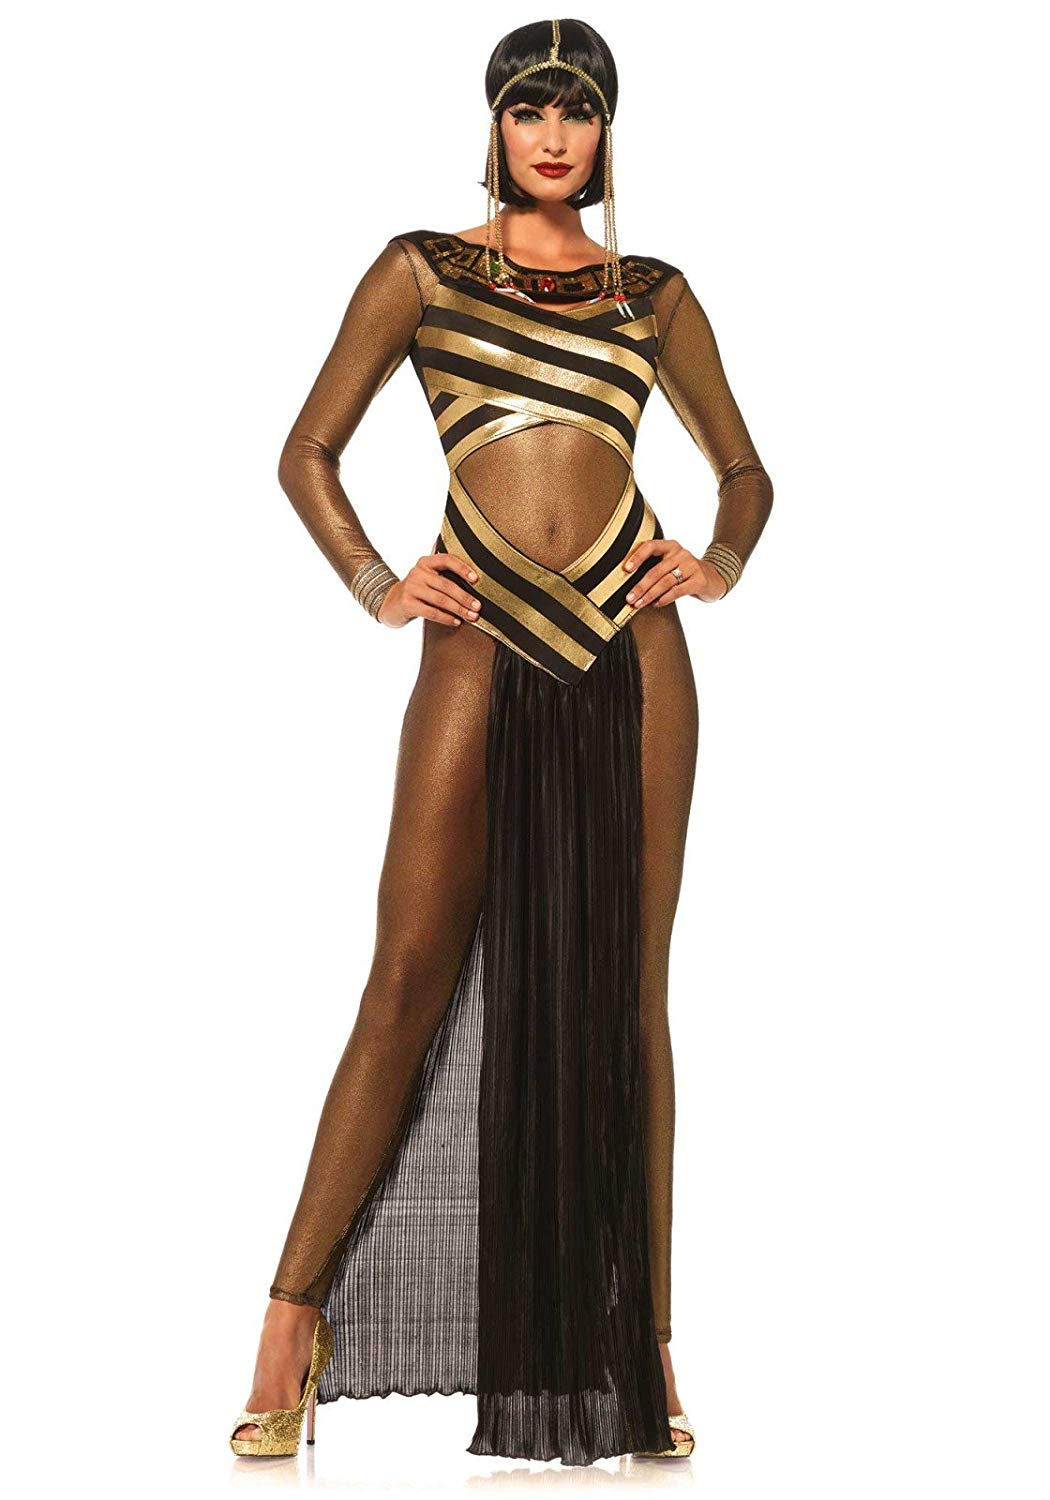 Leg Avenue Women's Goddess Isis - Halloween Costumes for Women